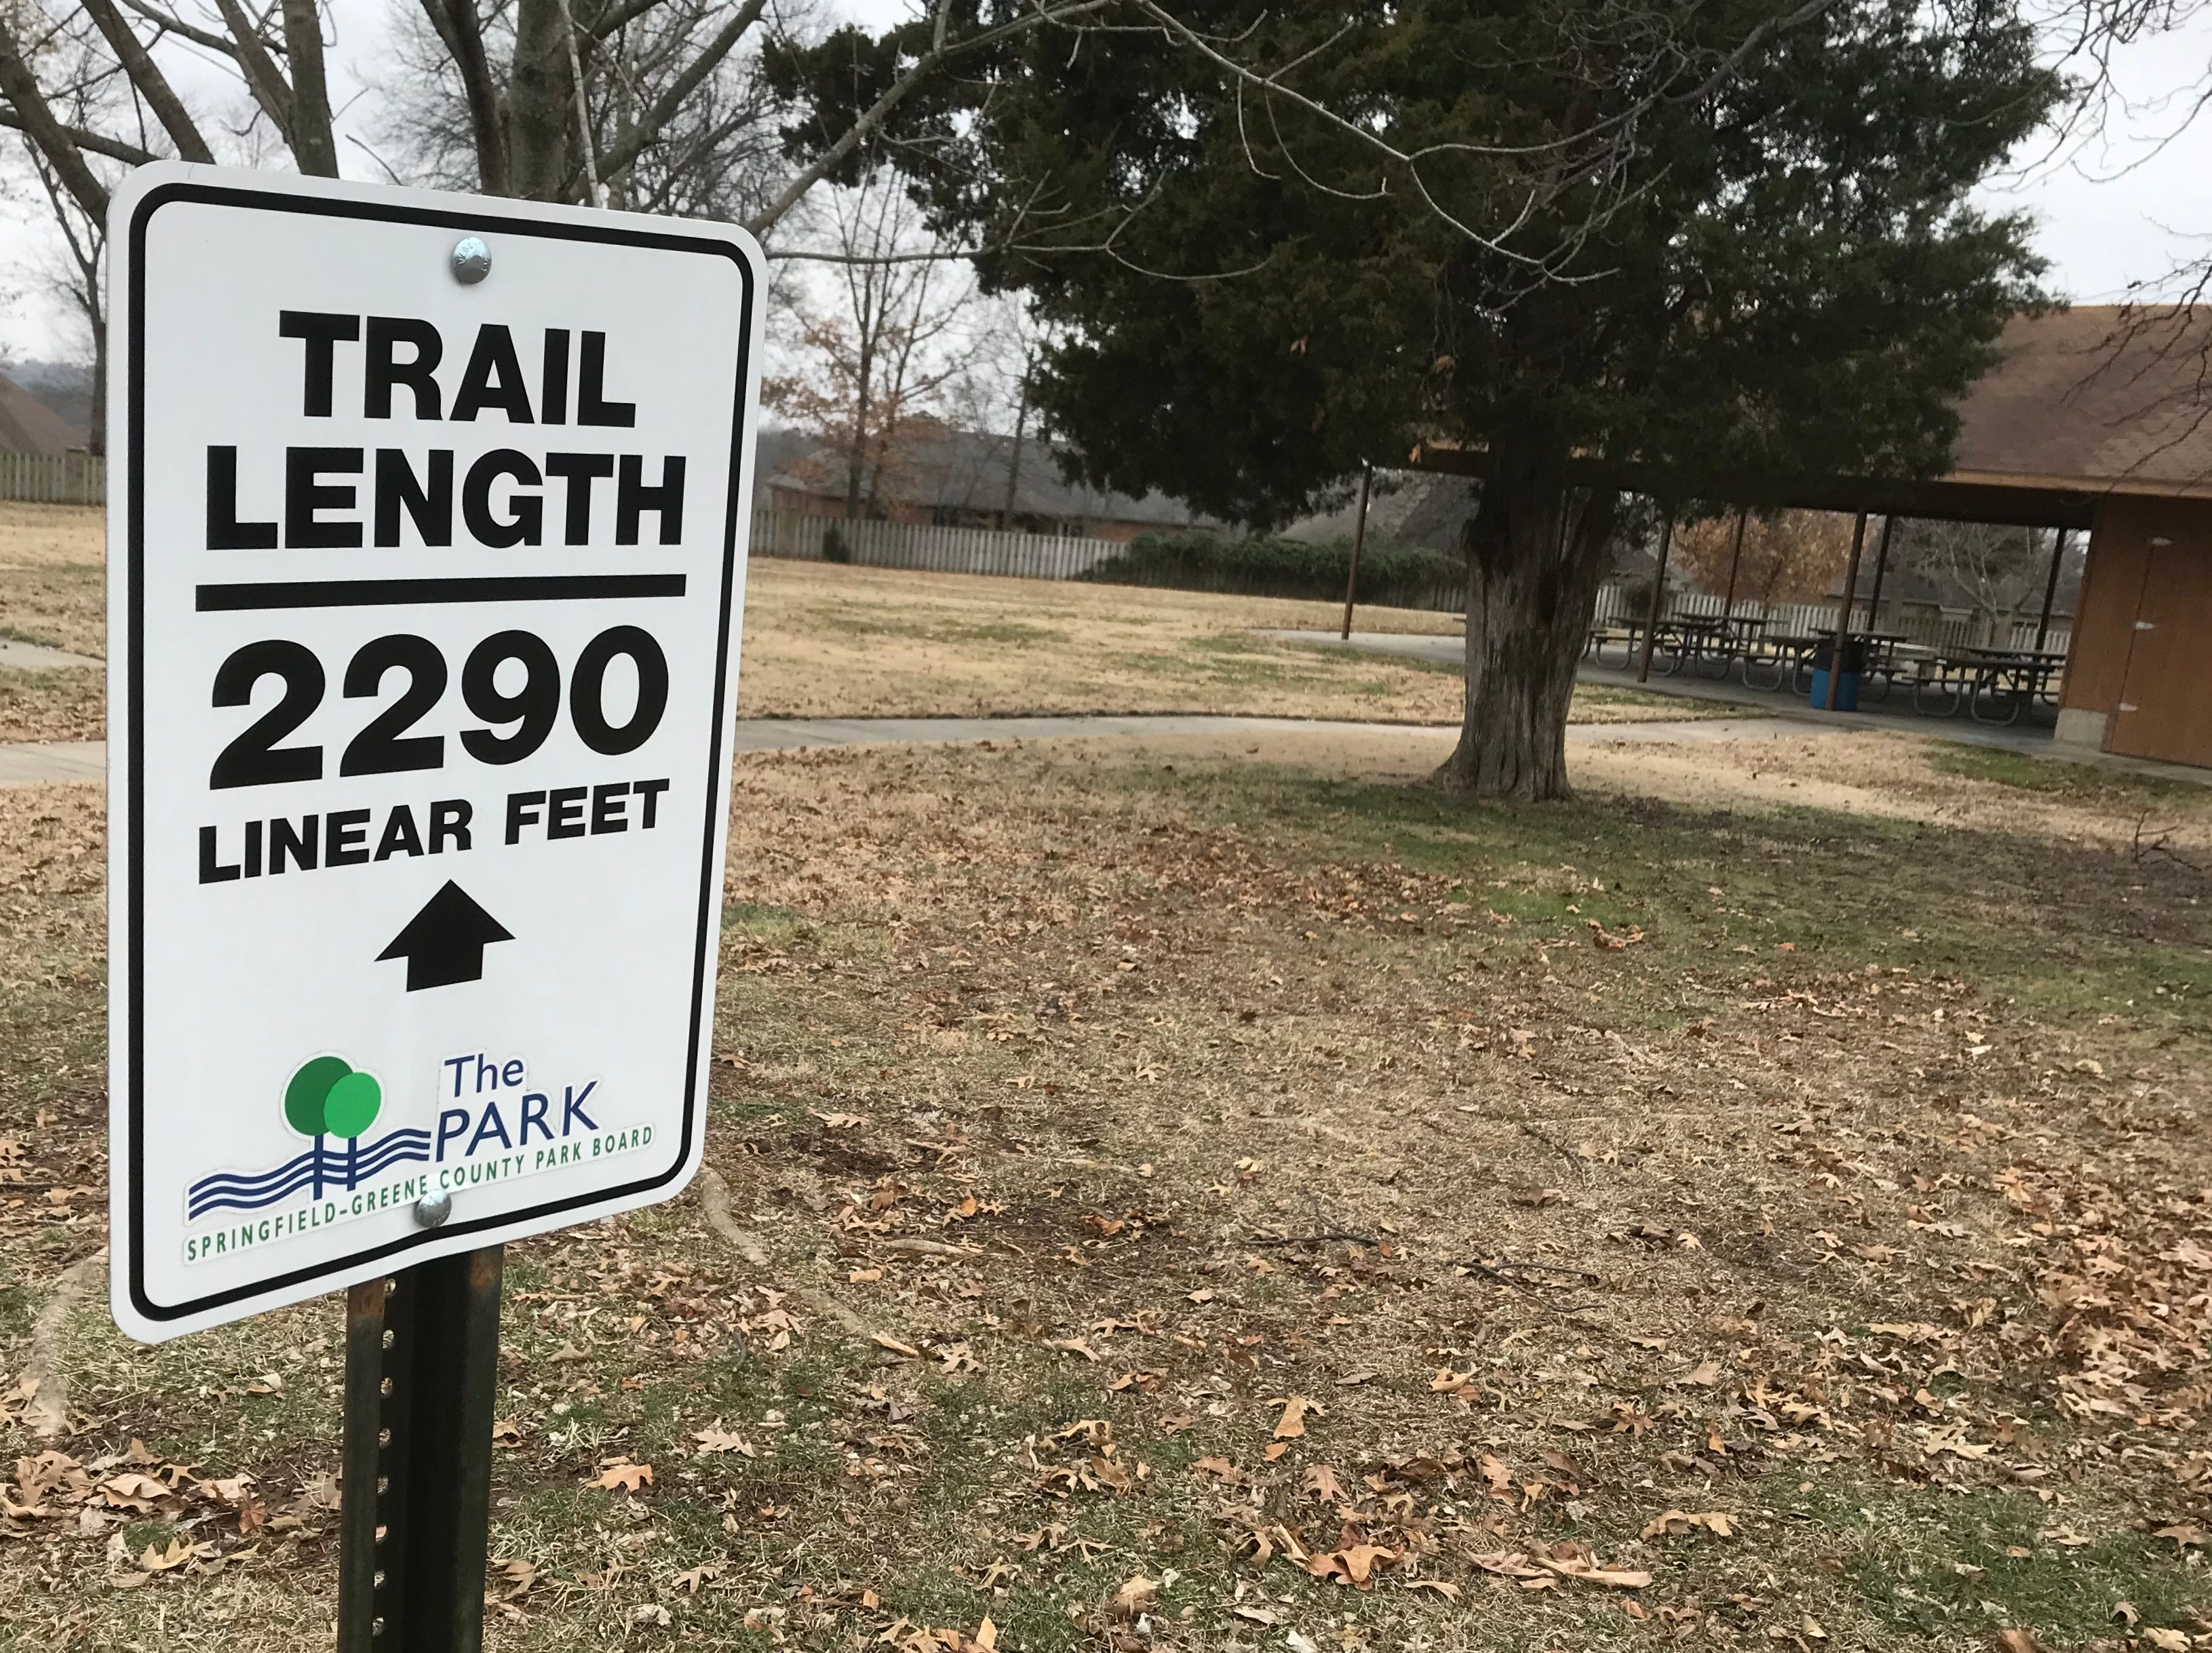 The Living Memorial Park is tucked next to the James River Freeway, and most people who don't live in the neighborhood see it on the drive to the Springfield Conservation Nature Center.